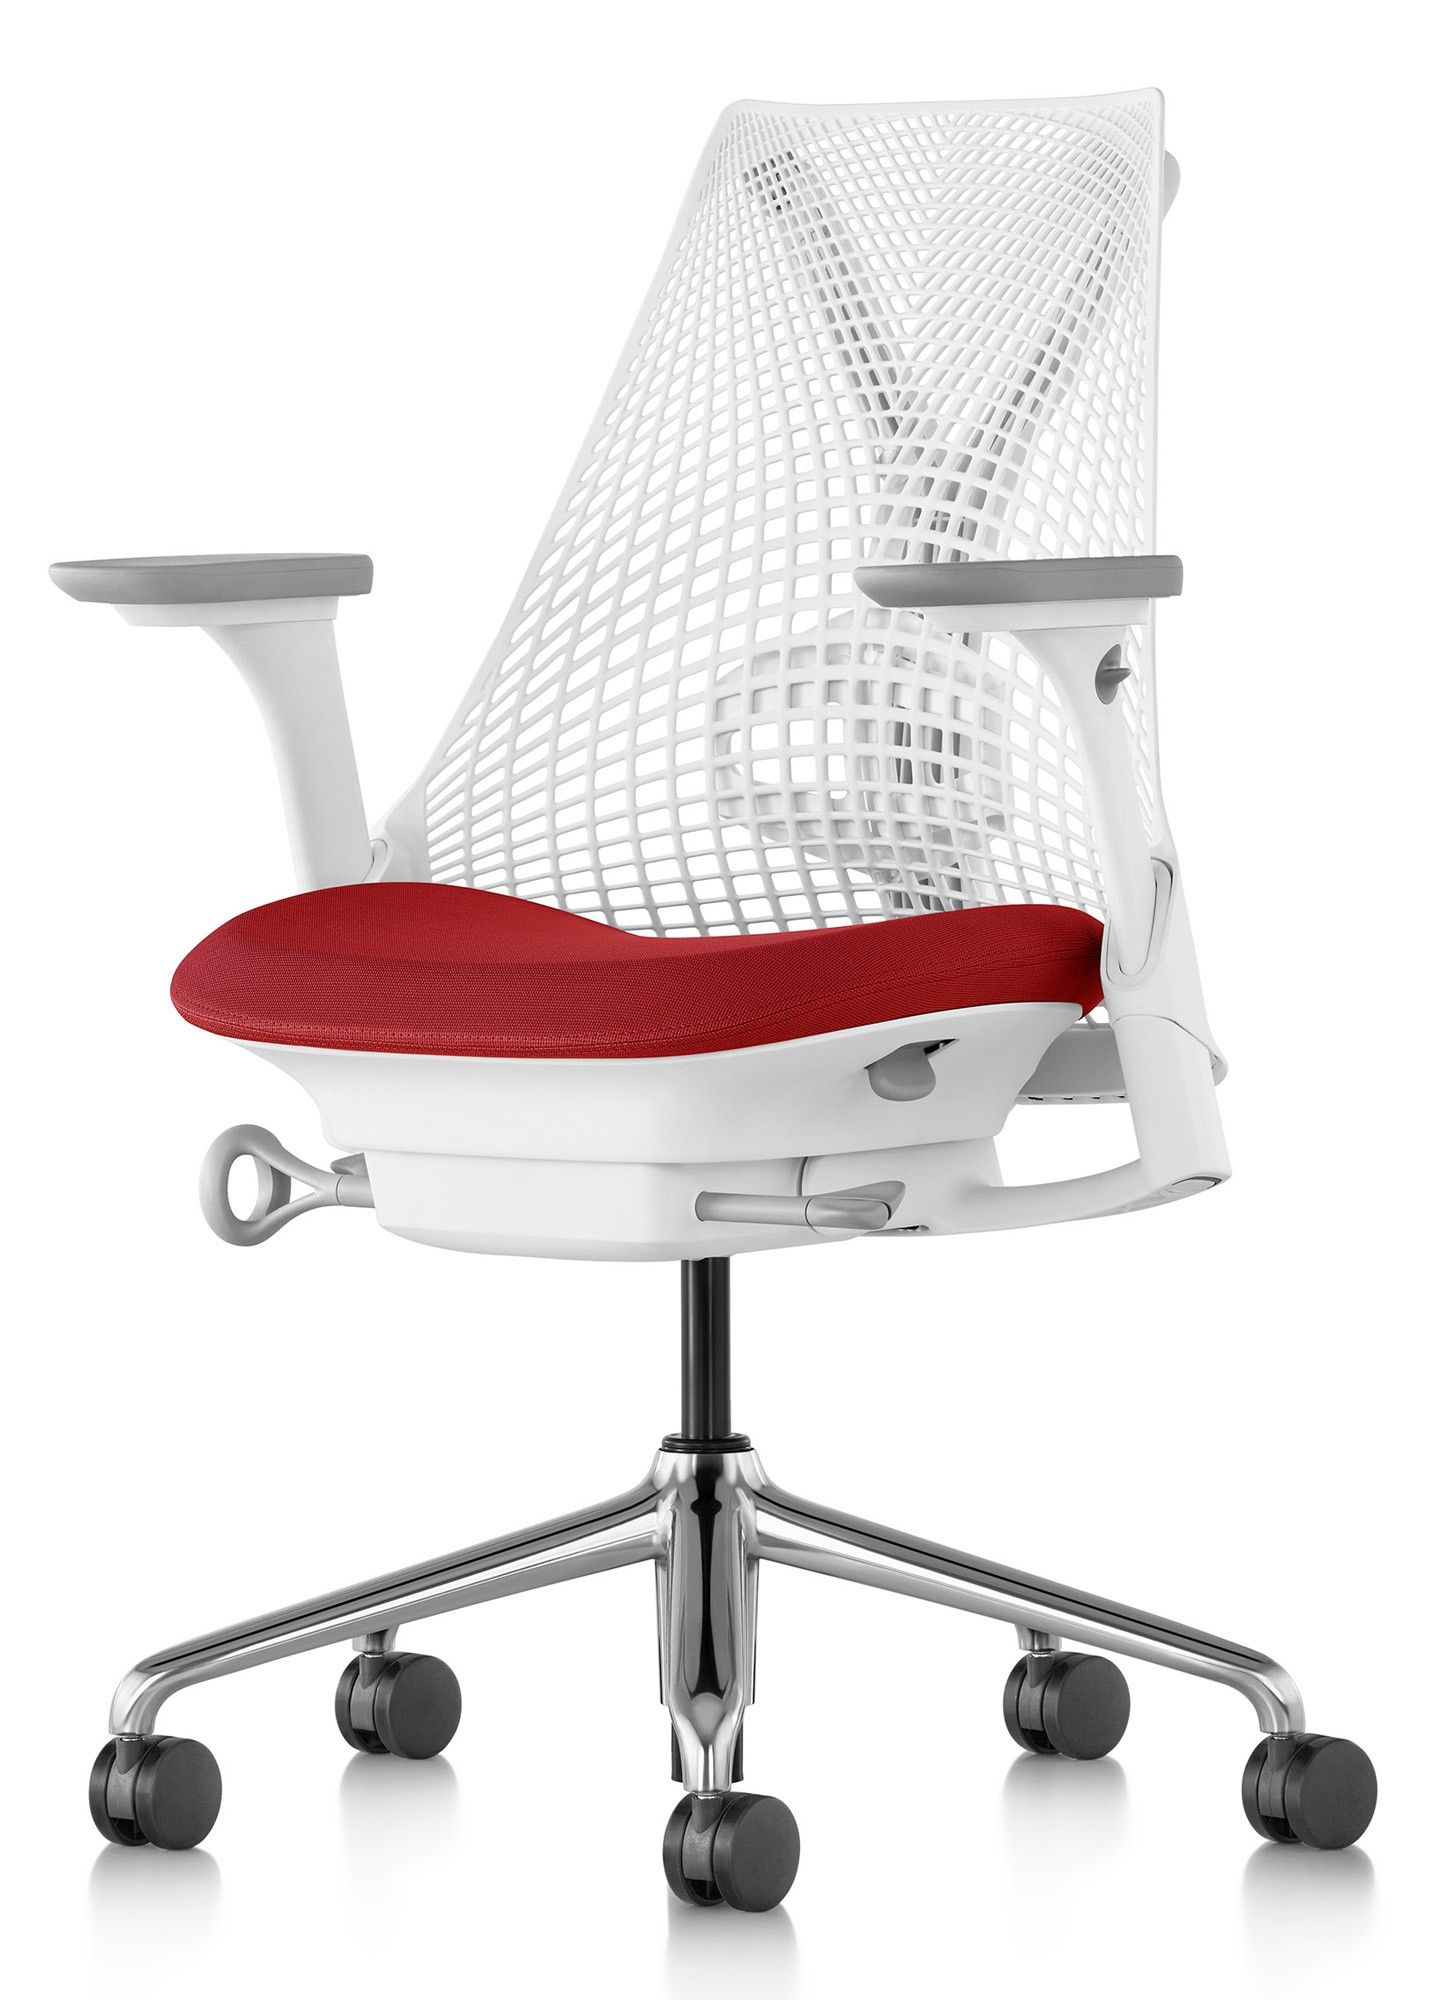 Pin by Memphis Sun on Product Sayl chair, Work chair, Chair